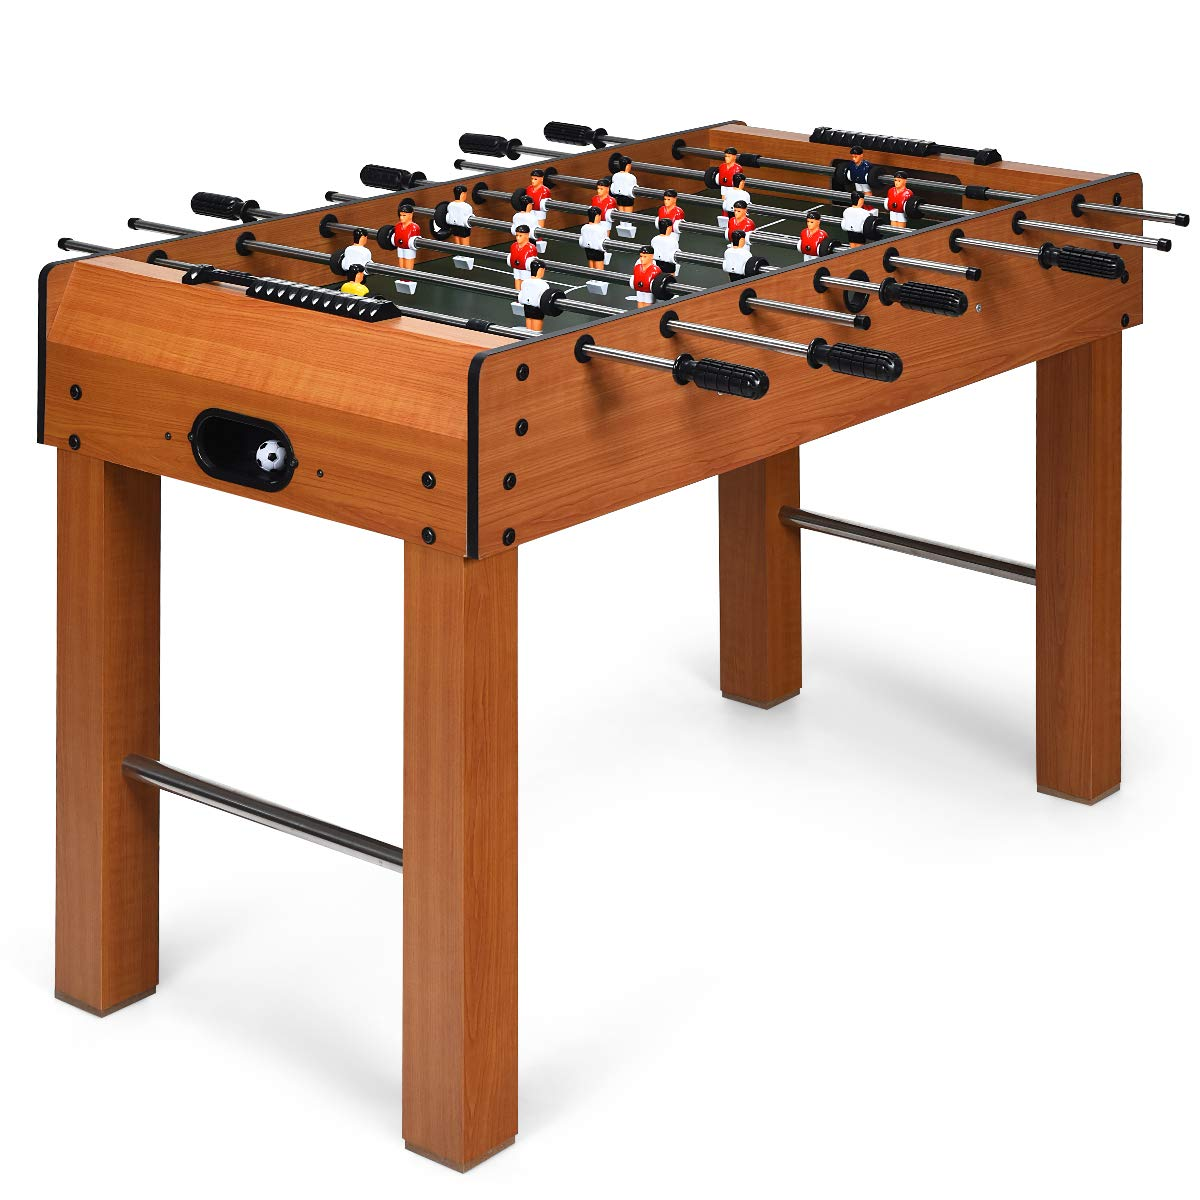 GYMAX 48'' Foosball Table, Indoor Soccer Wood Game Table w/ 2 Balls, Competition Sized & Multi Person Table Soccer for Adults, Home, Game Room (48'') by GYMAX